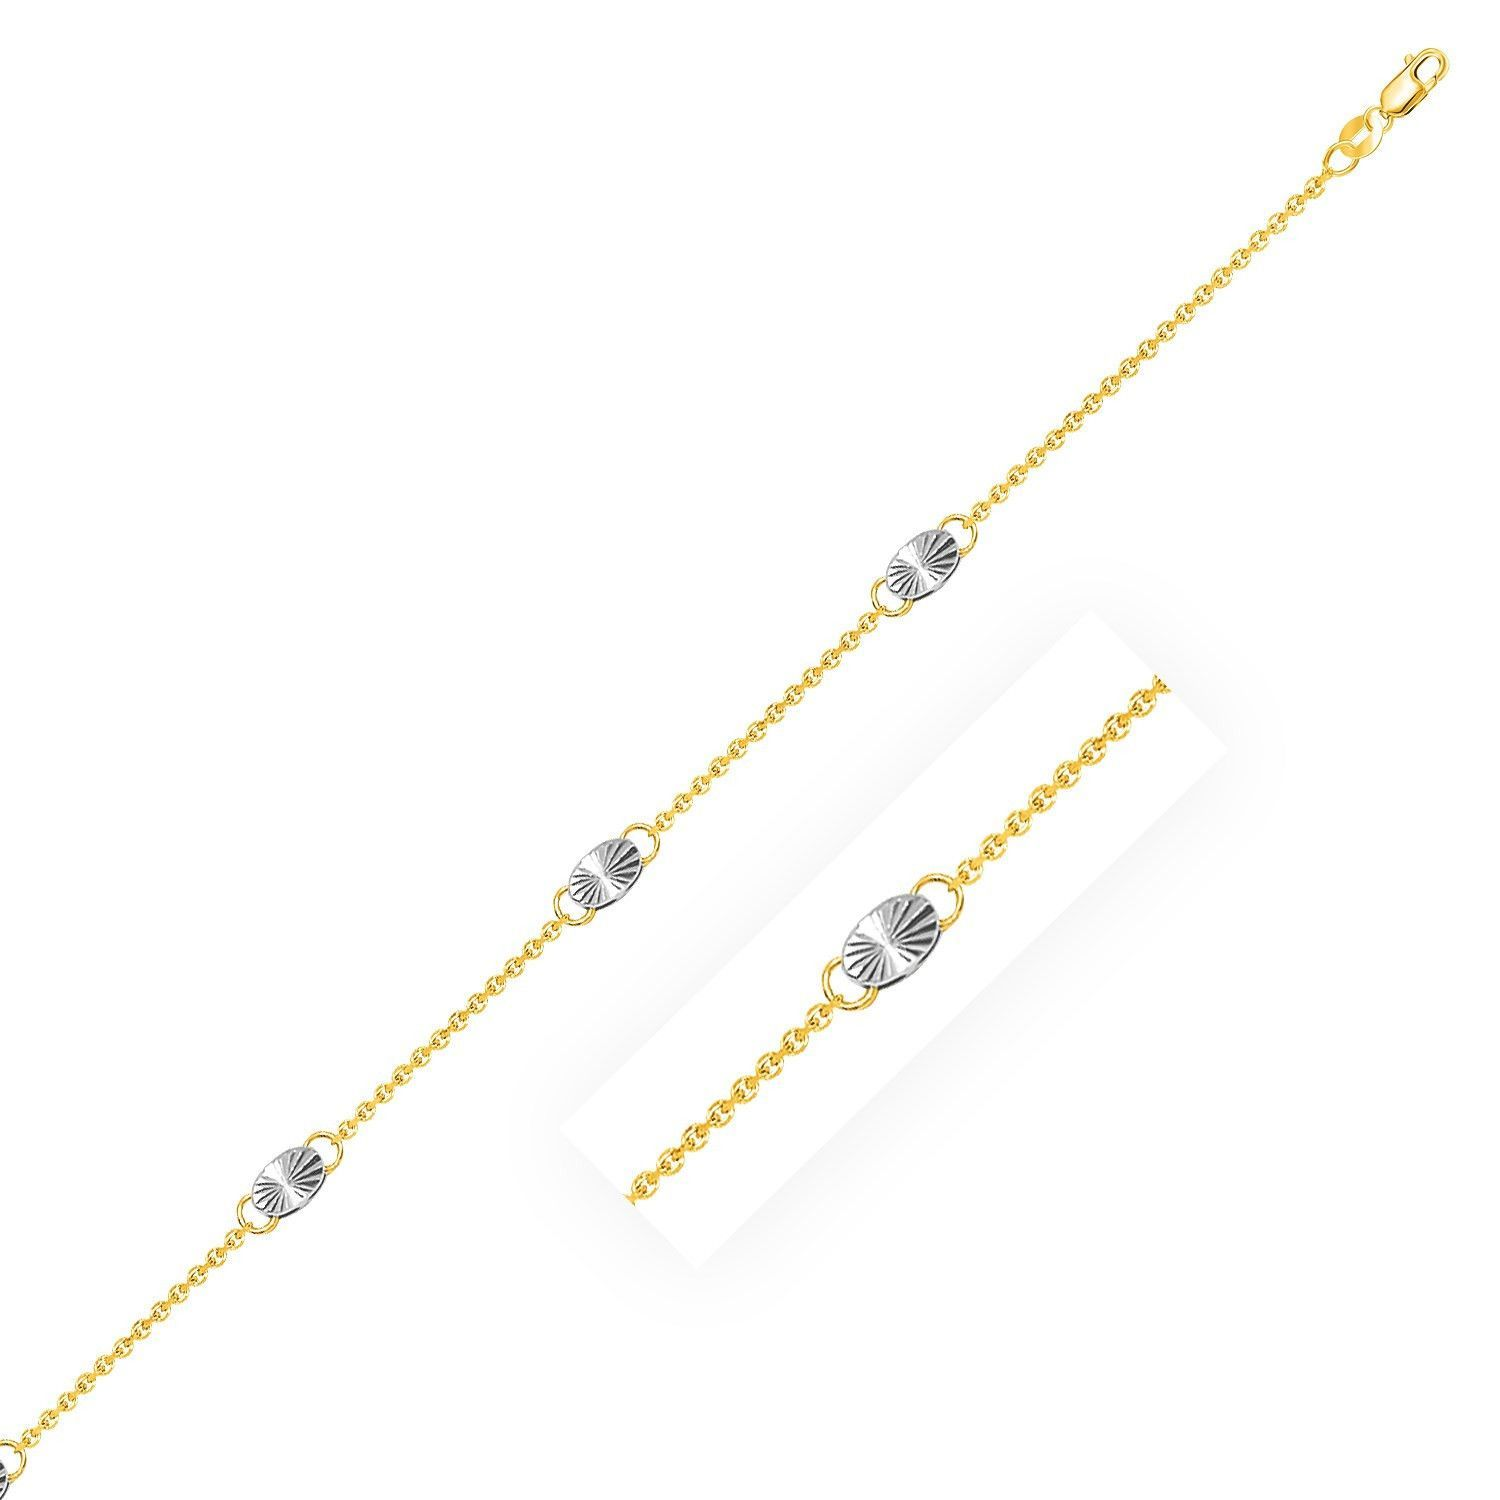 14K Two-Tone Gold Cable Chain Anklet with Diamond Cut Oval Stations